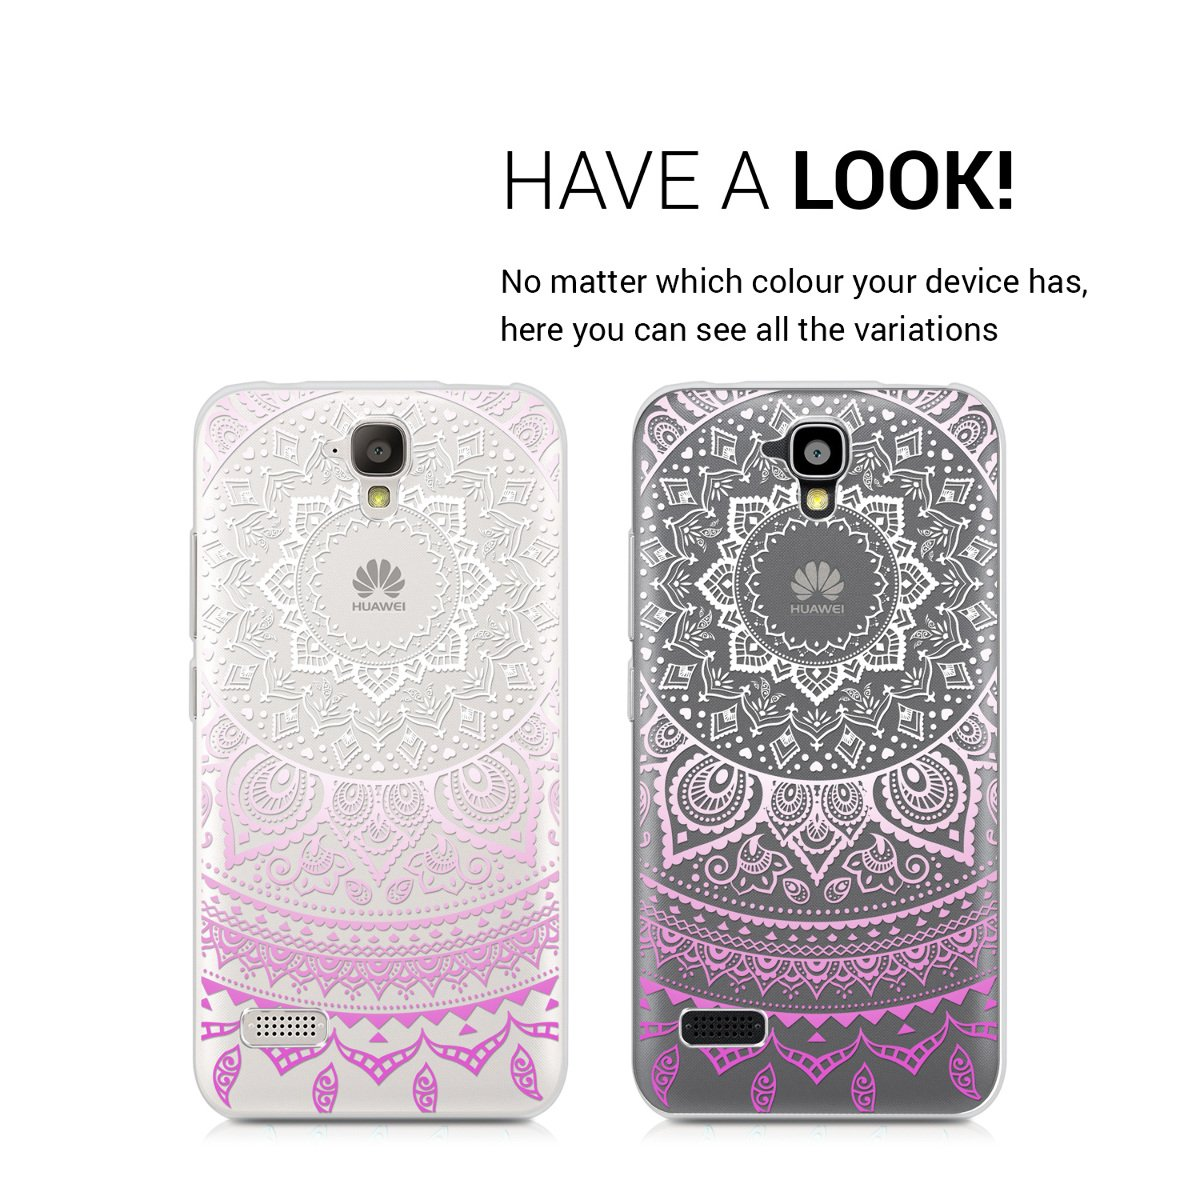 kwmobile TPU Silicone Case for Huawei Y5 - Crystal Clear Smartphone Back Case Protective Cover - Violet/White/Transparent